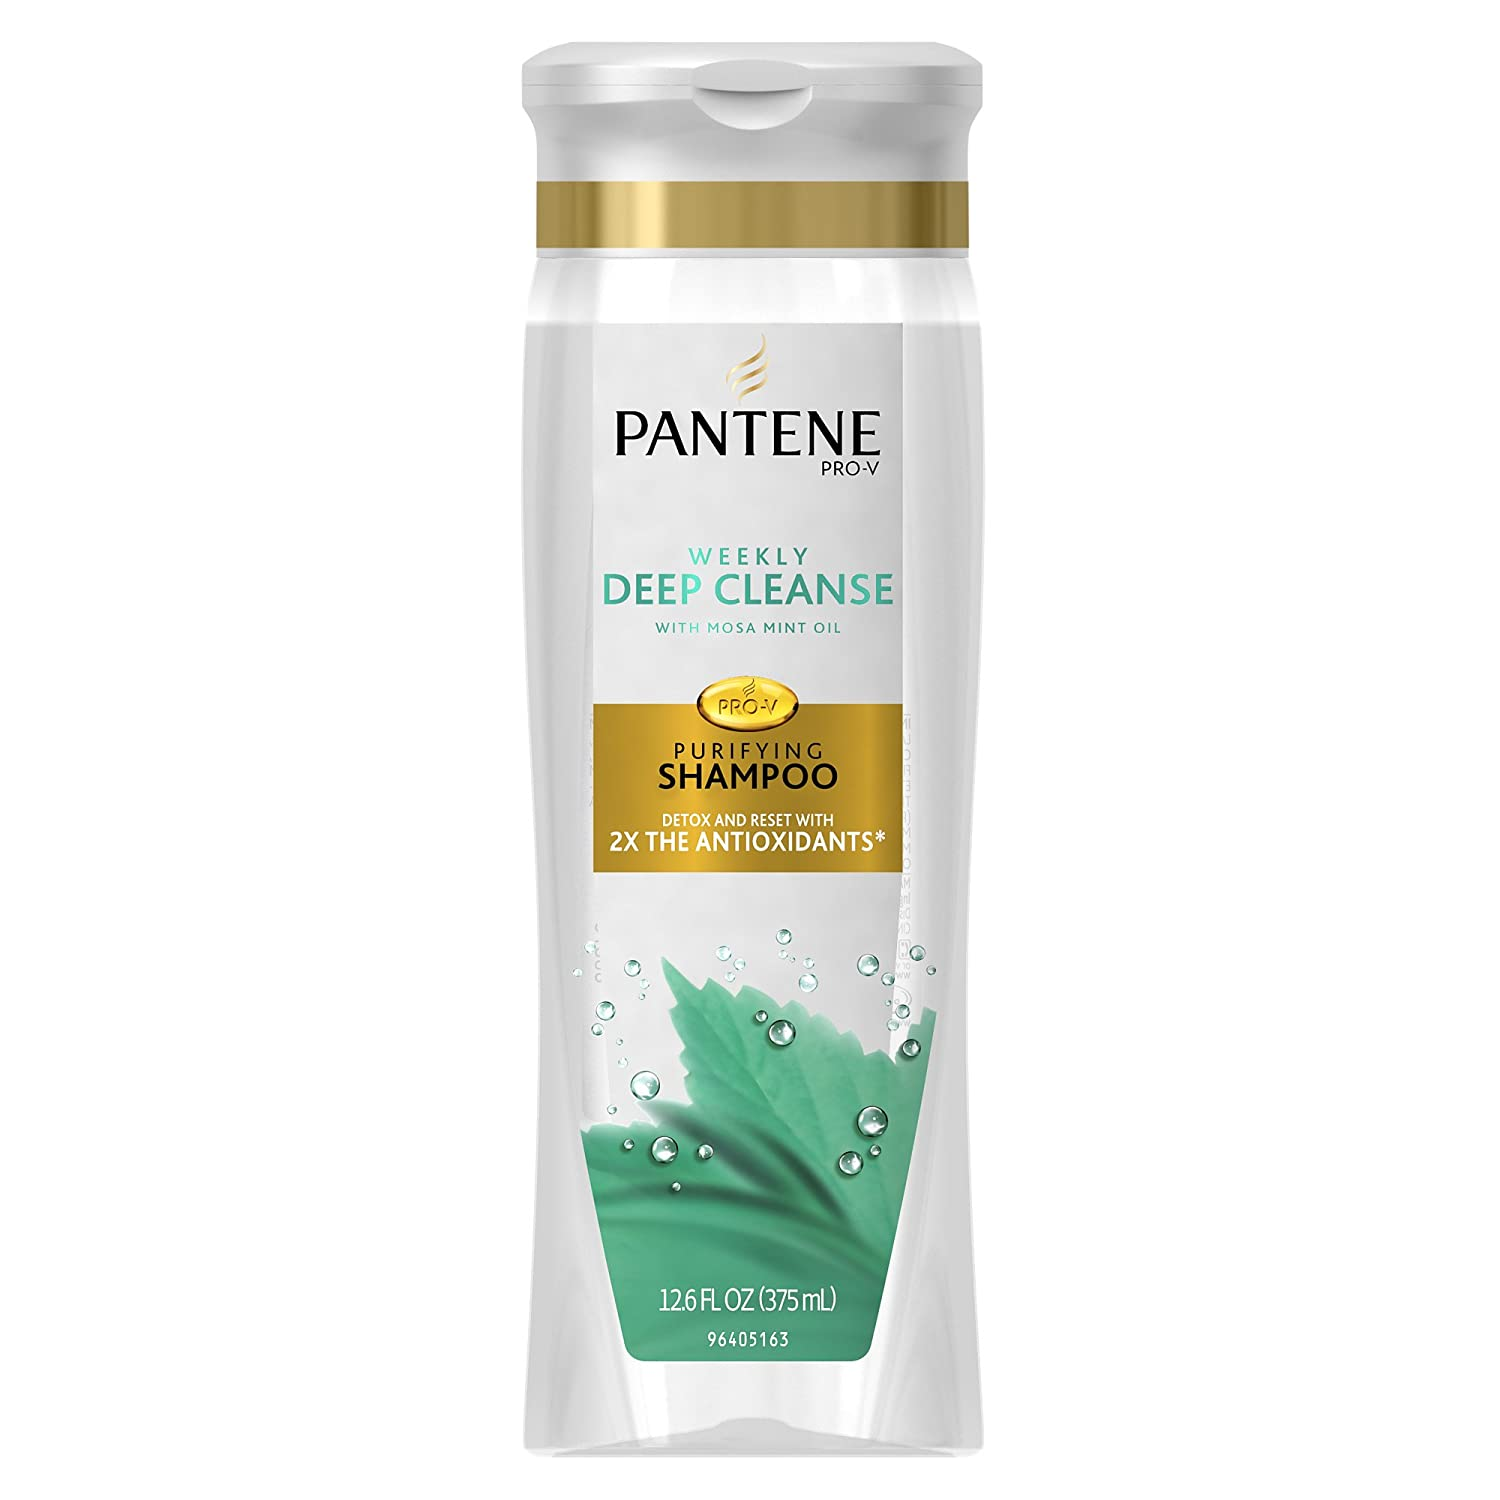 Pantene Pro-V Weekly Deep Cleanse Purifying Shampoo 12.6 Fl Oz